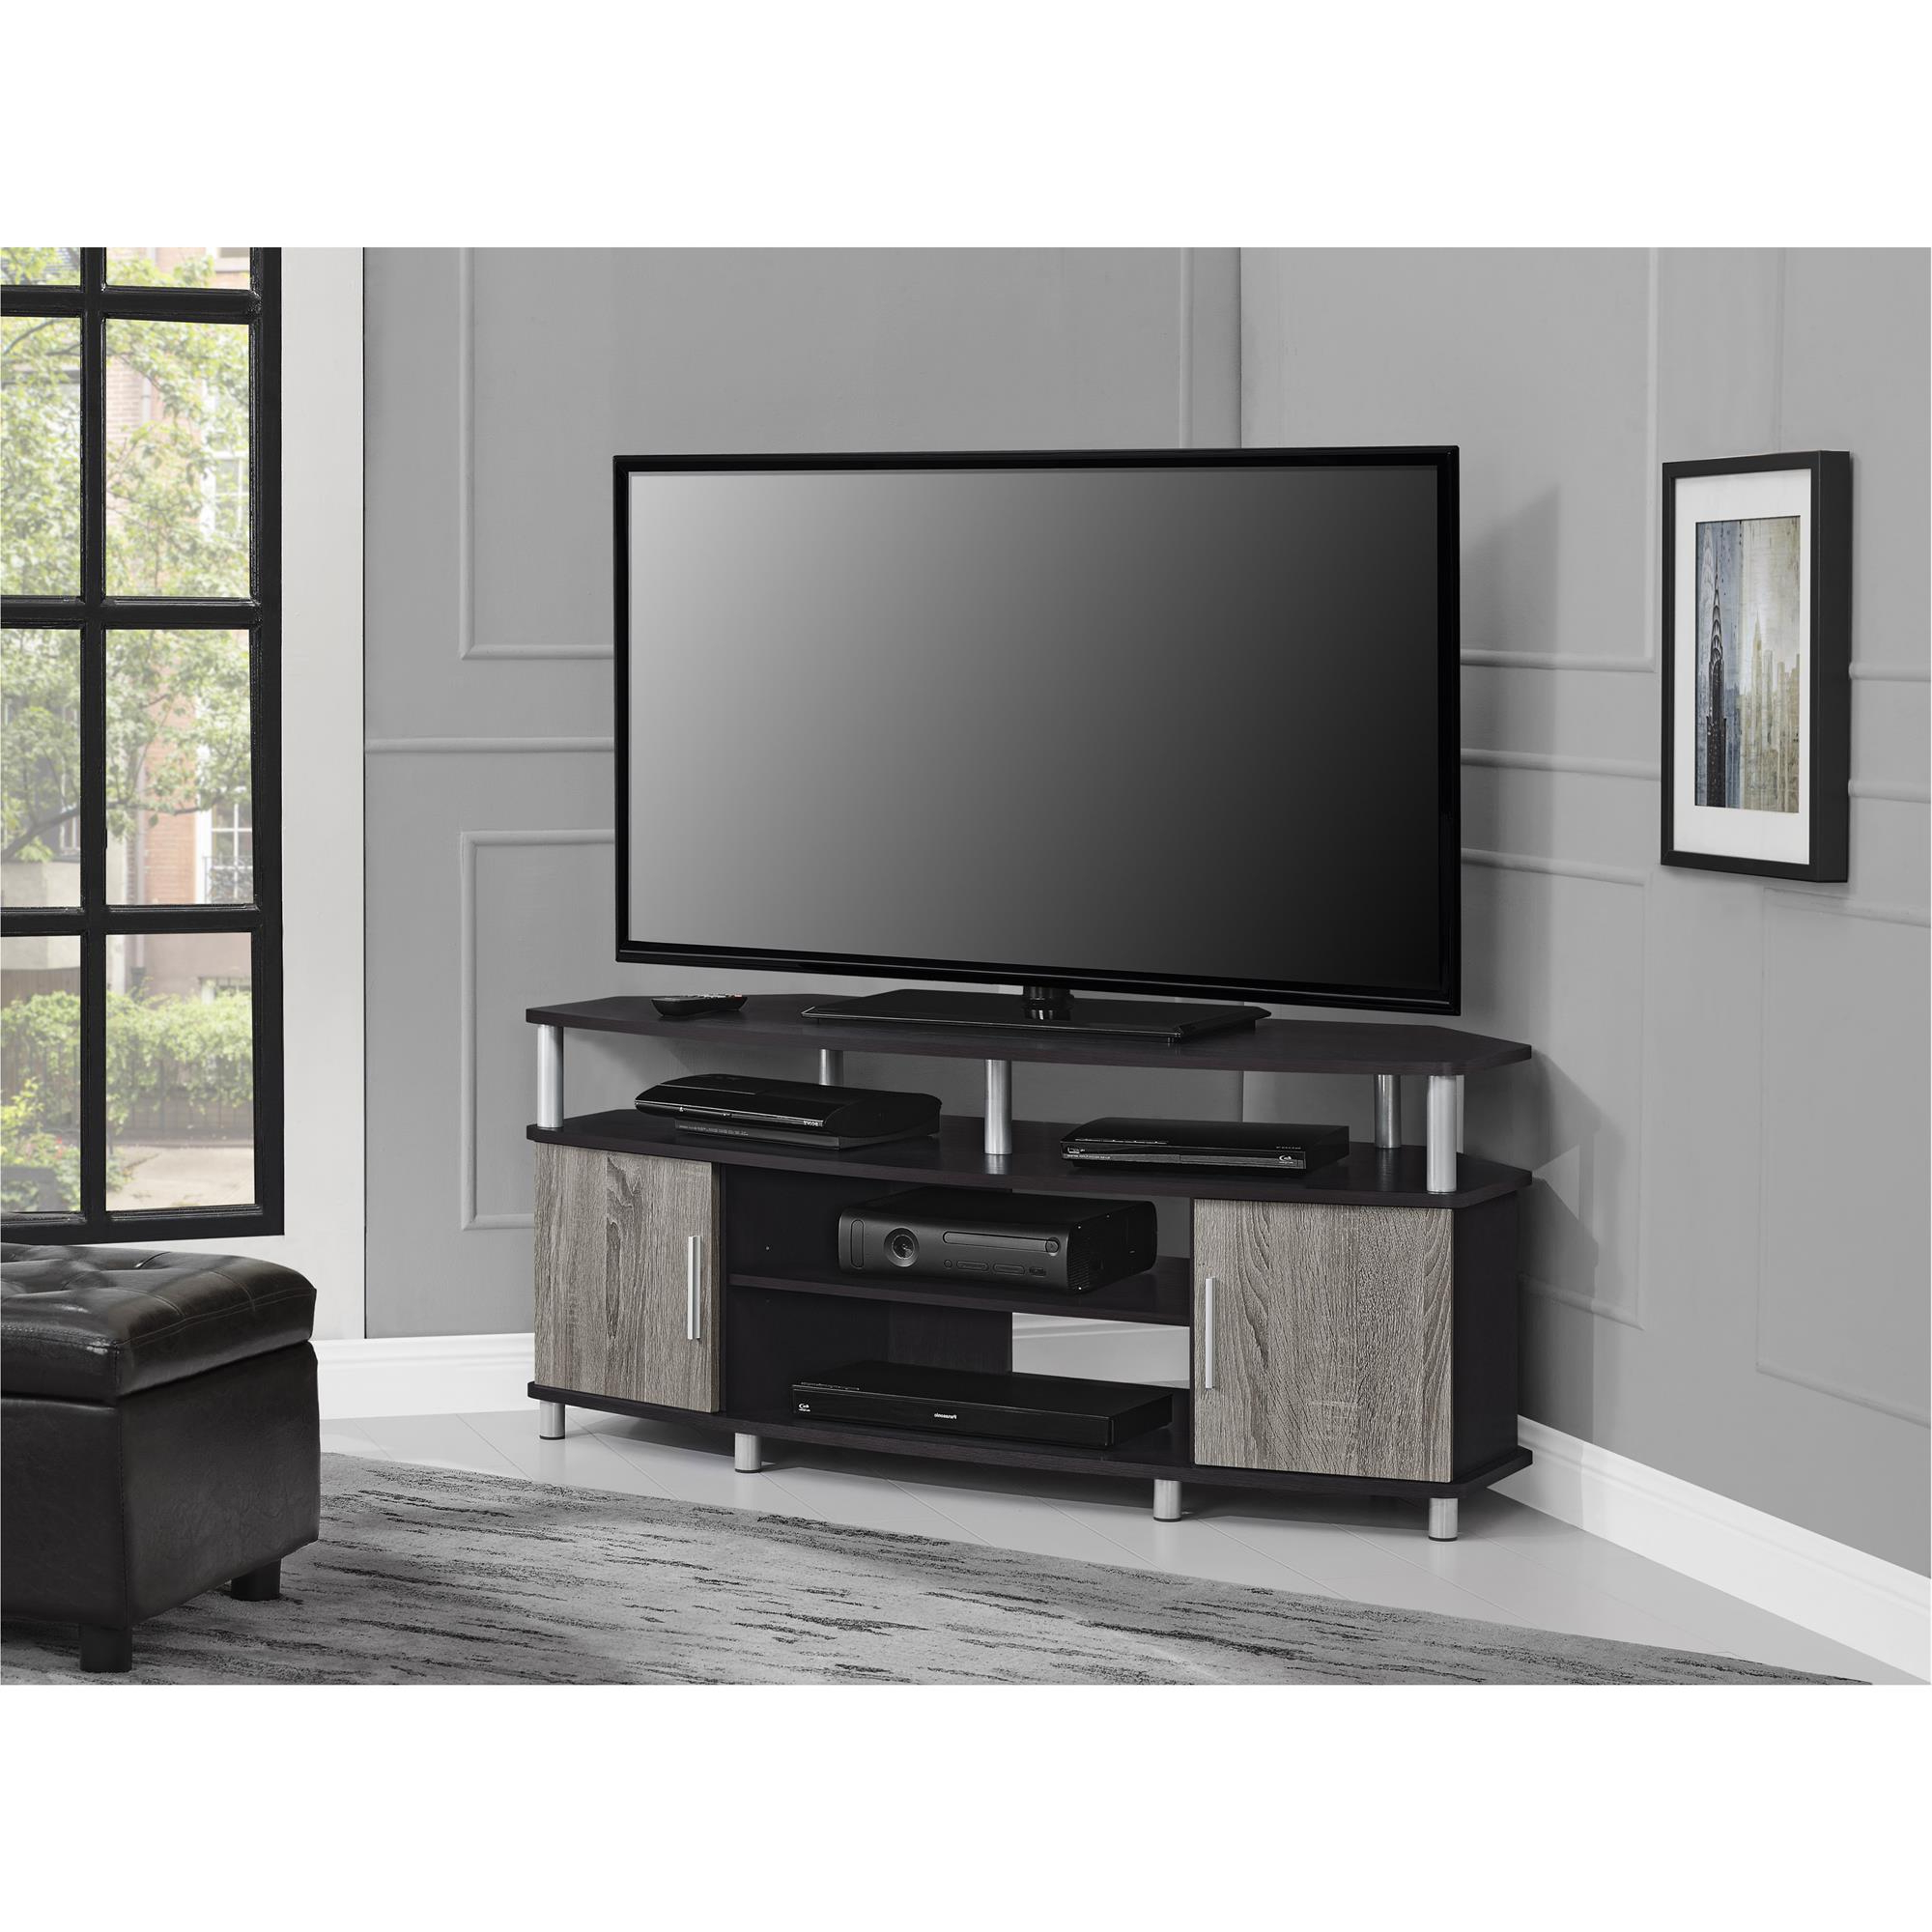 "Well Known Ameriwood Home Carson Corner Tv Stand For Tvs Up To 50"" Wide, Black Throughout Unique Corner Tv Stands (View 16 of 20)"